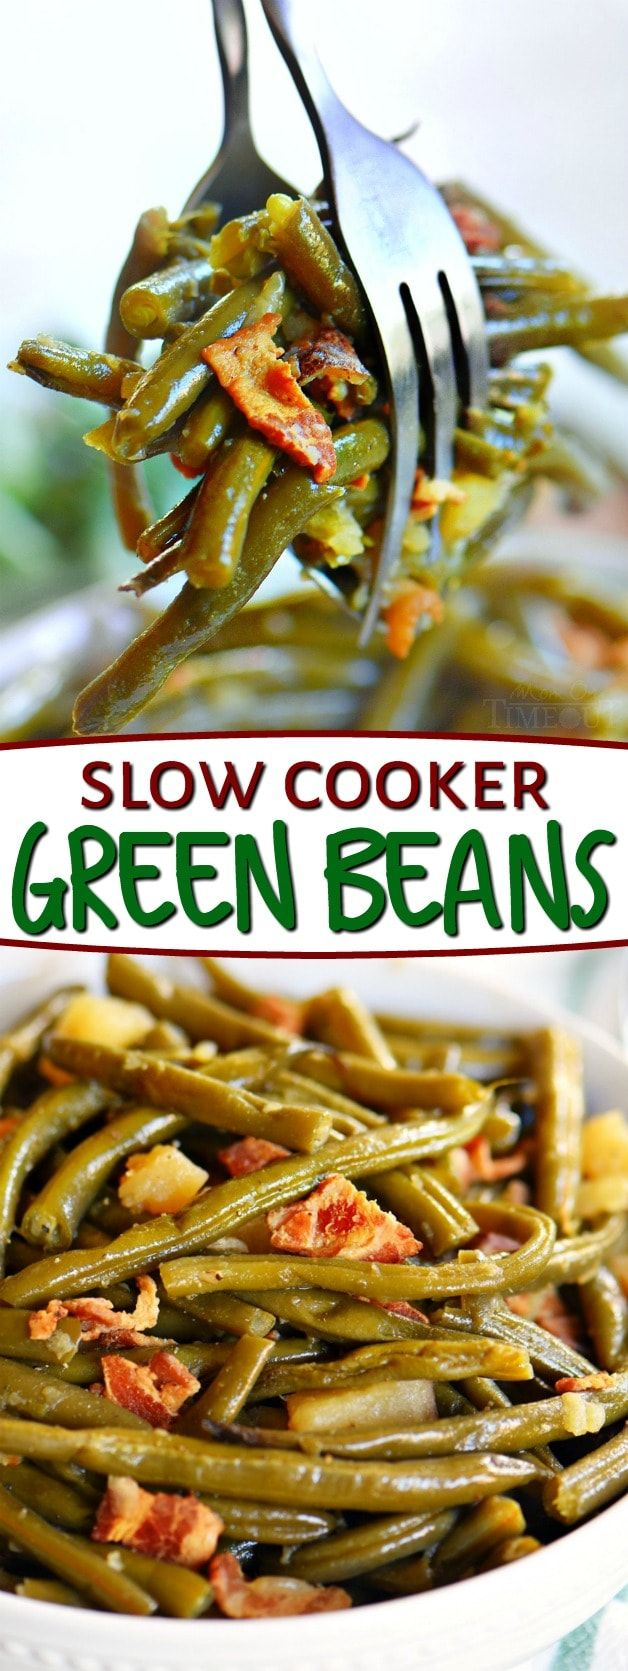 Slow Cooker Green Beans with Bacon is one of our very favorite side dishes! Just a handful of ingredients and a few minutes of work for this amazing recipe! // Mom On Timeout #green #beans #greenbeans #bacon #side #sides #sidedish #recipe #recipes #slowcooker #crockpot #dinnersidedishes